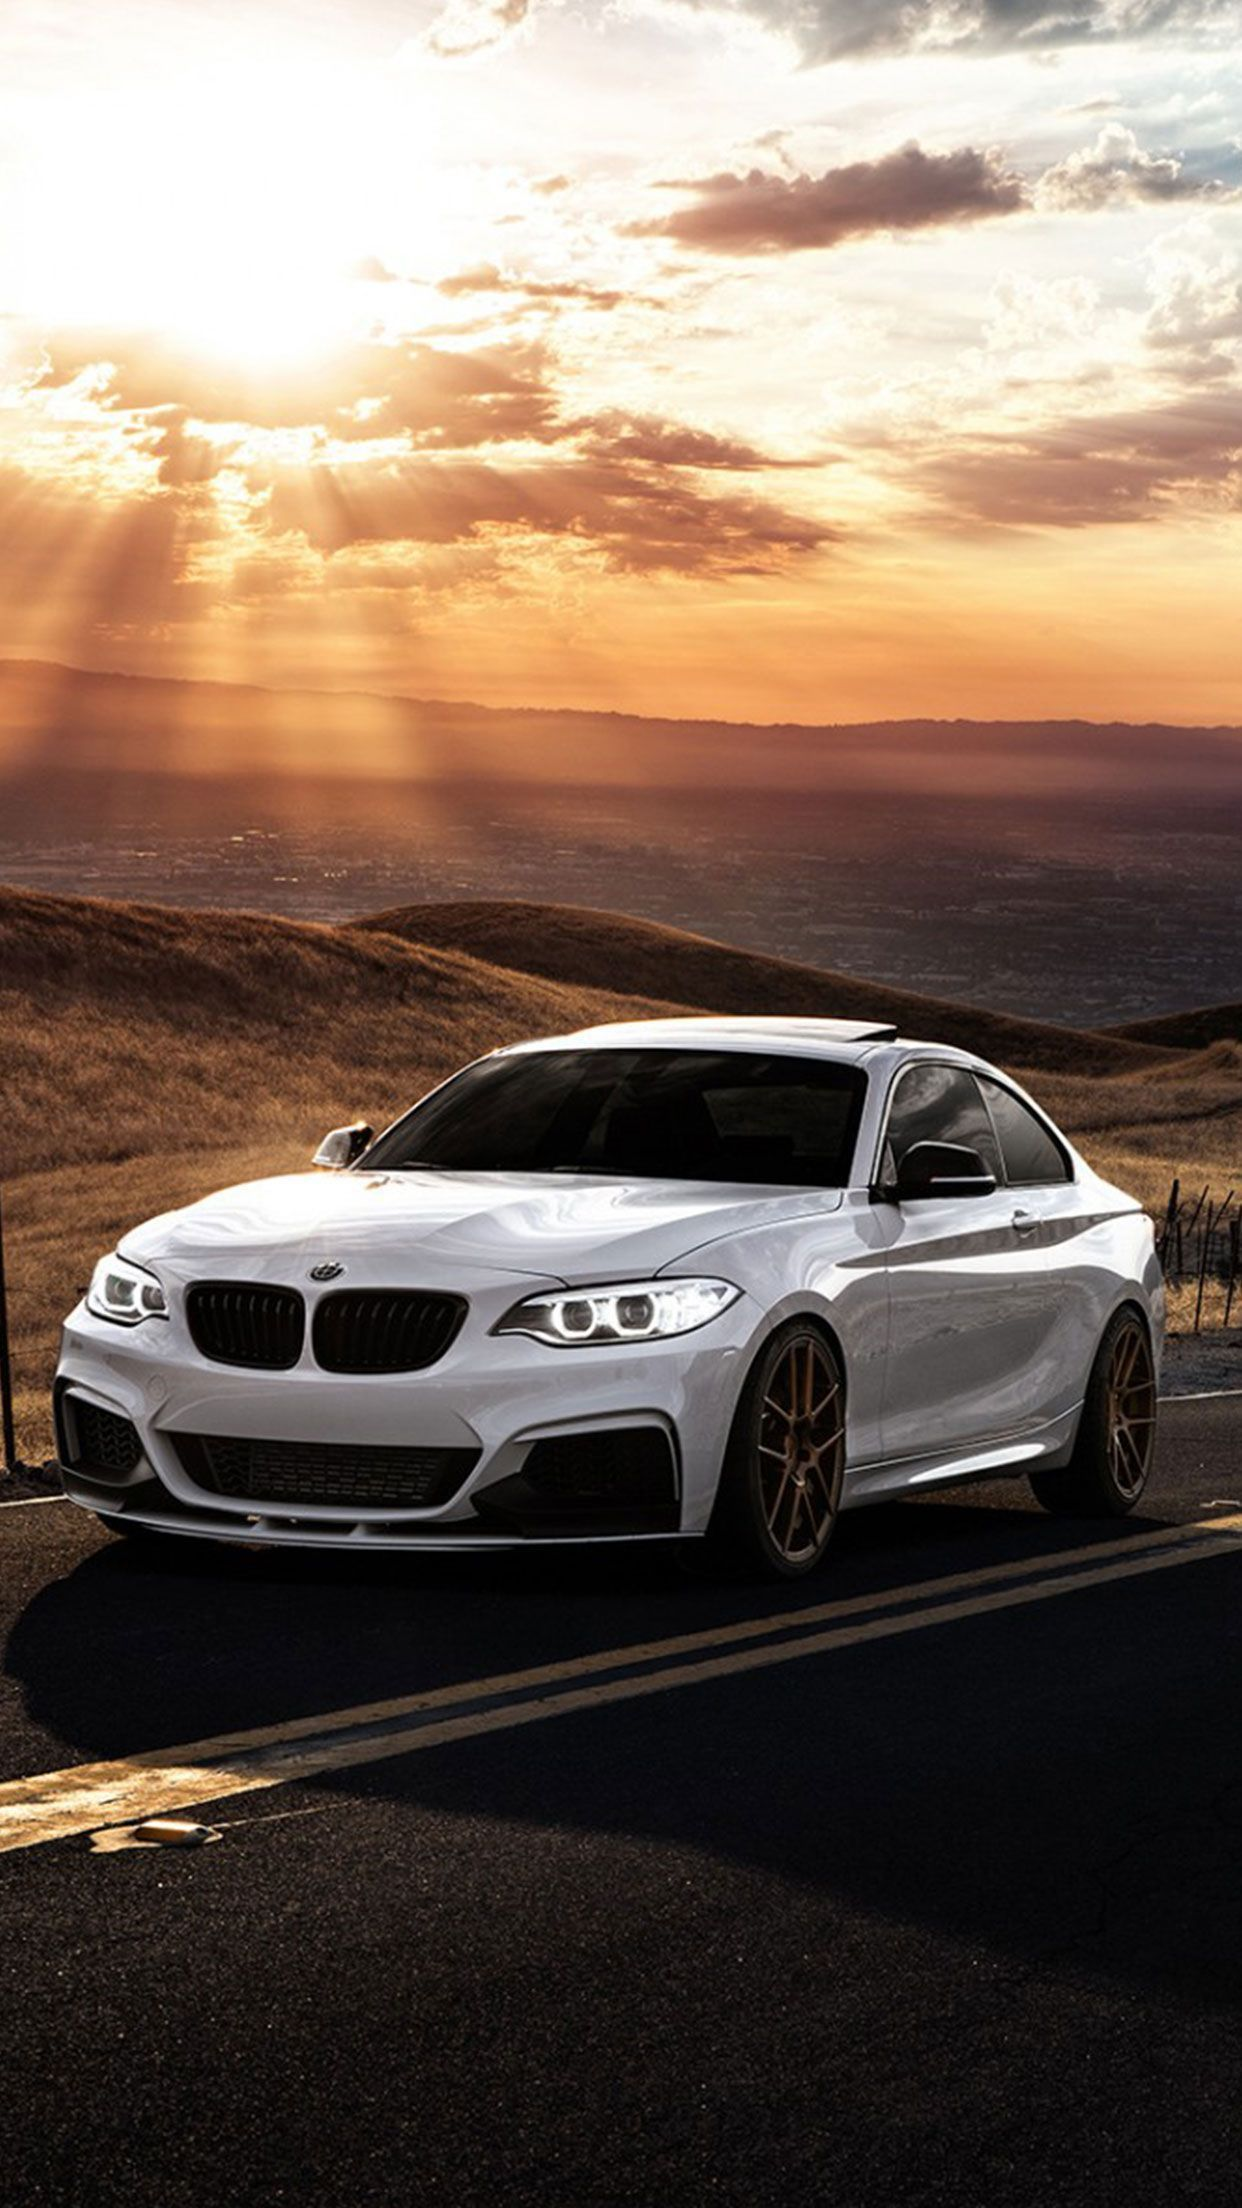 Wallpaper For Mobile Bmw Cars And Bmw On Pinterest Bmw Sports